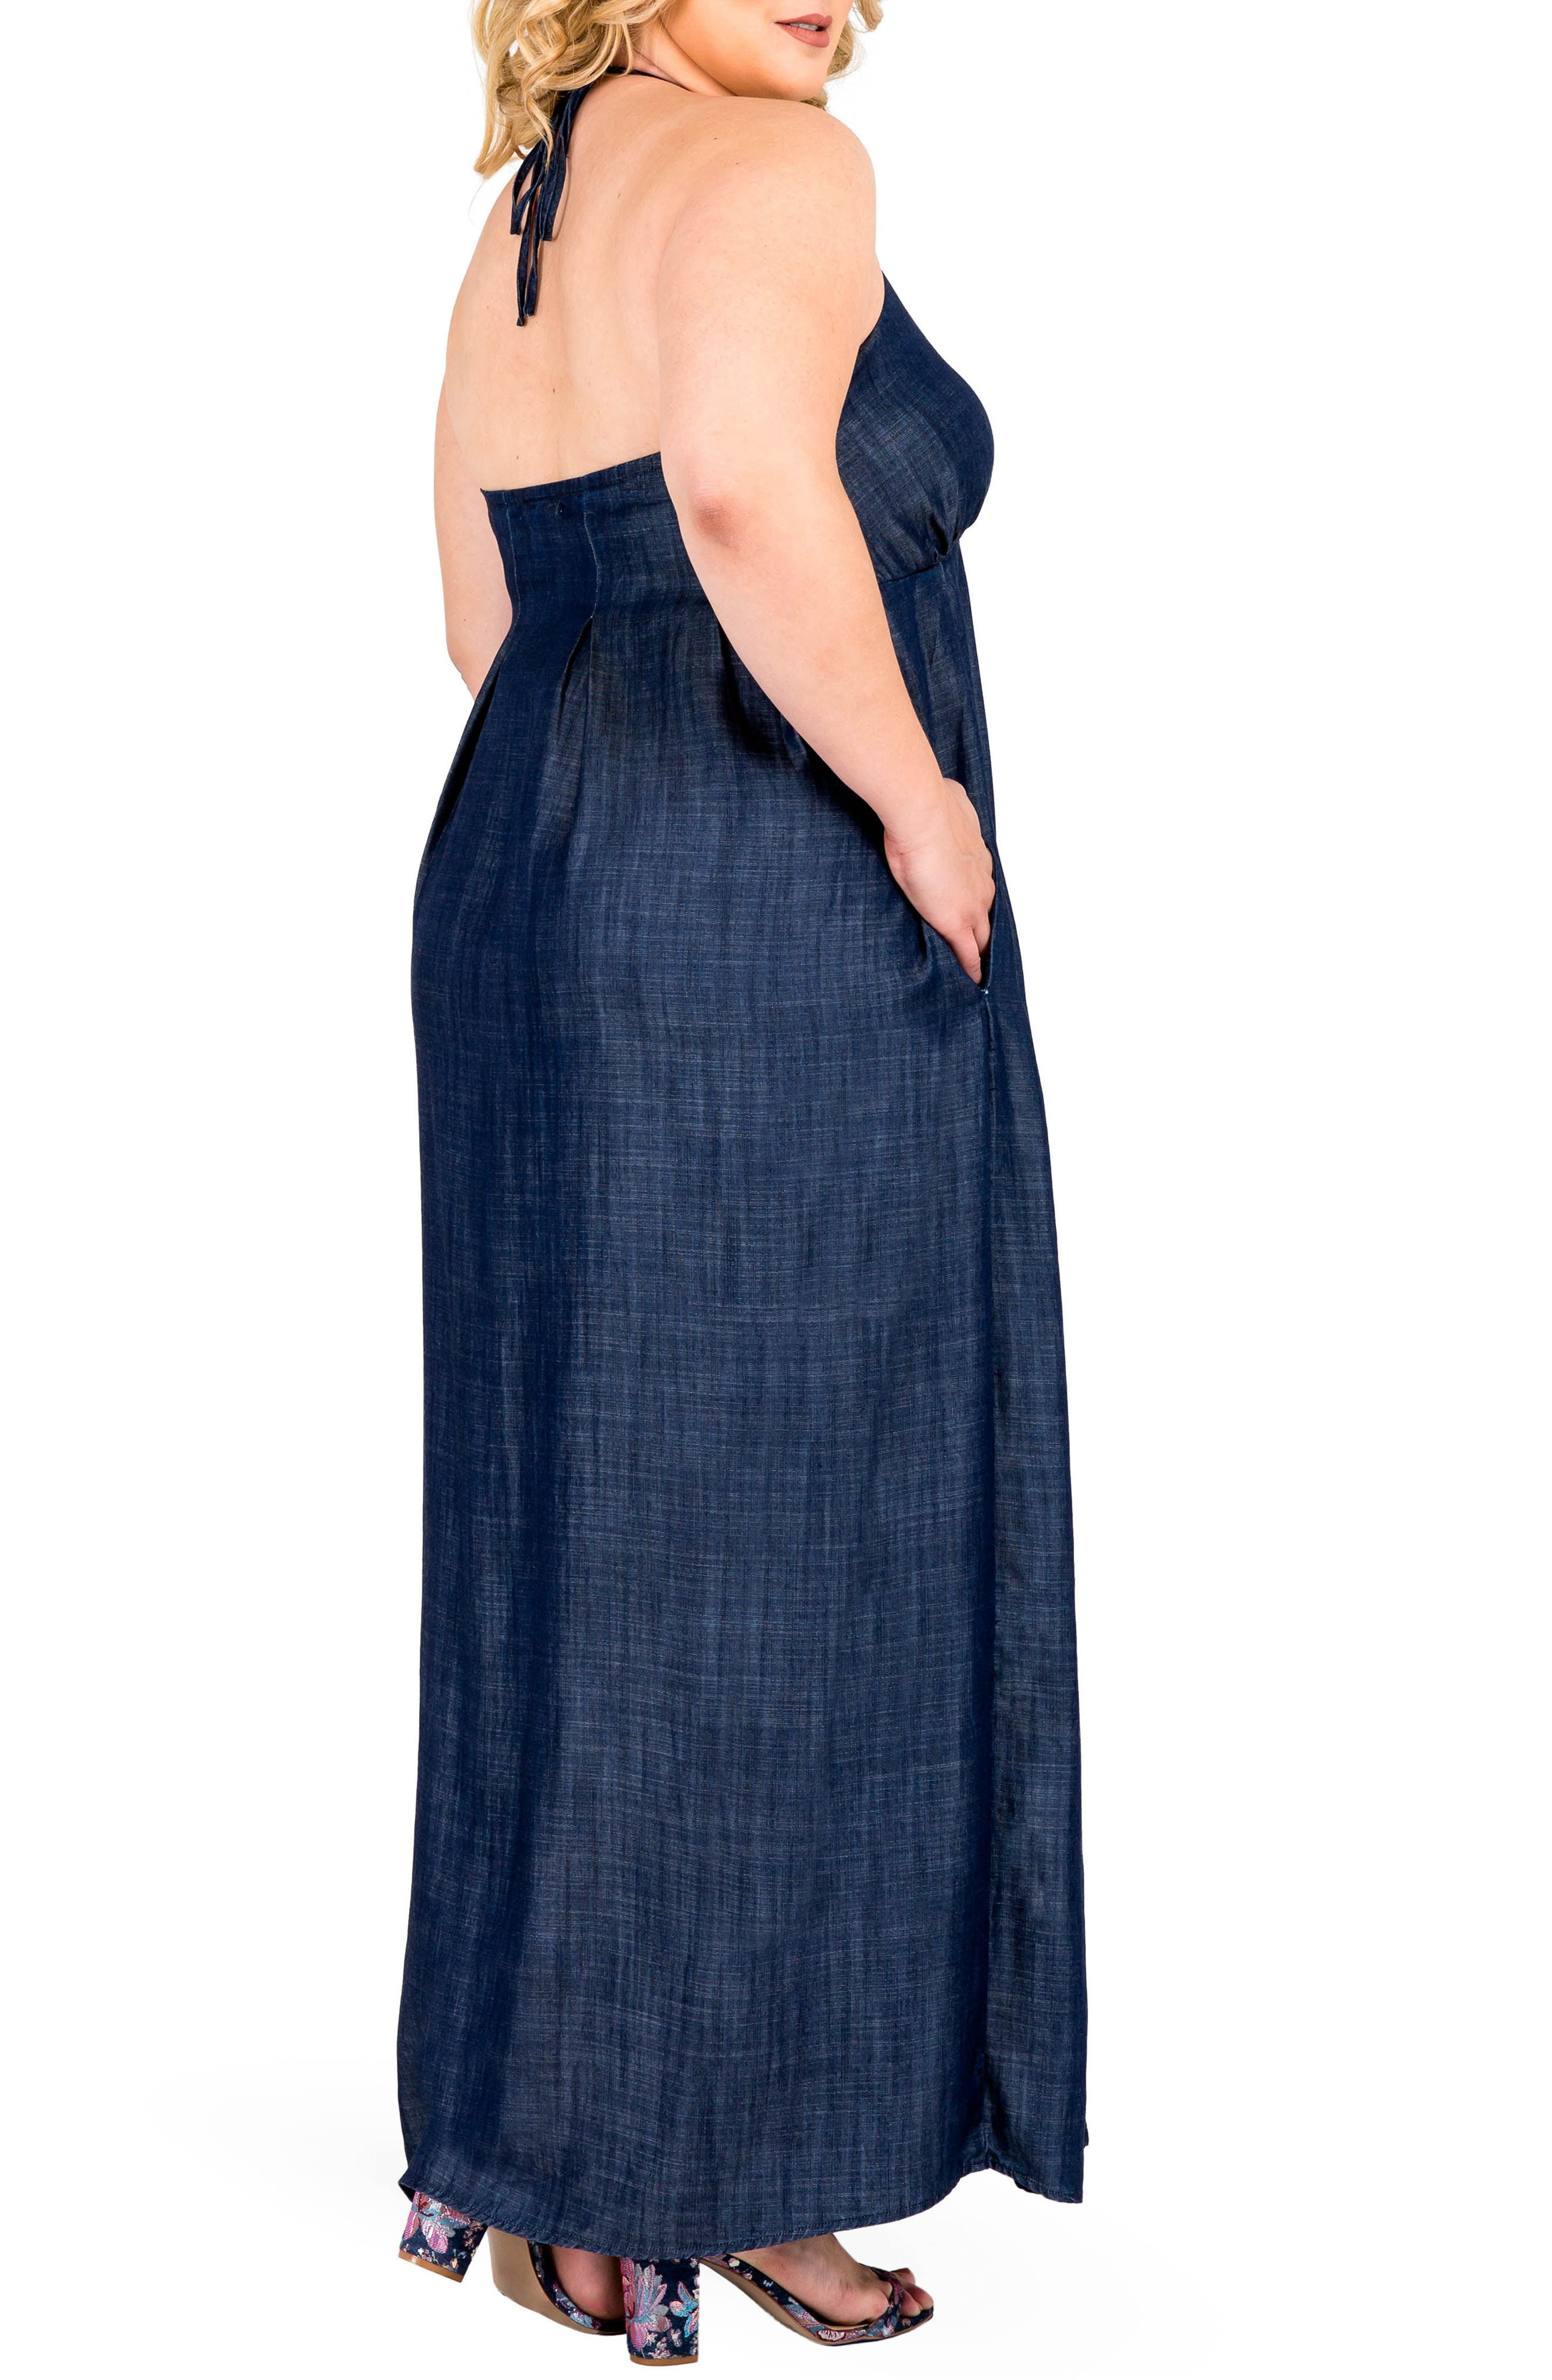 Maui Maxi Chambray Halter Dress,                             Alternate thumbnail 3, color,                             Dark Blue